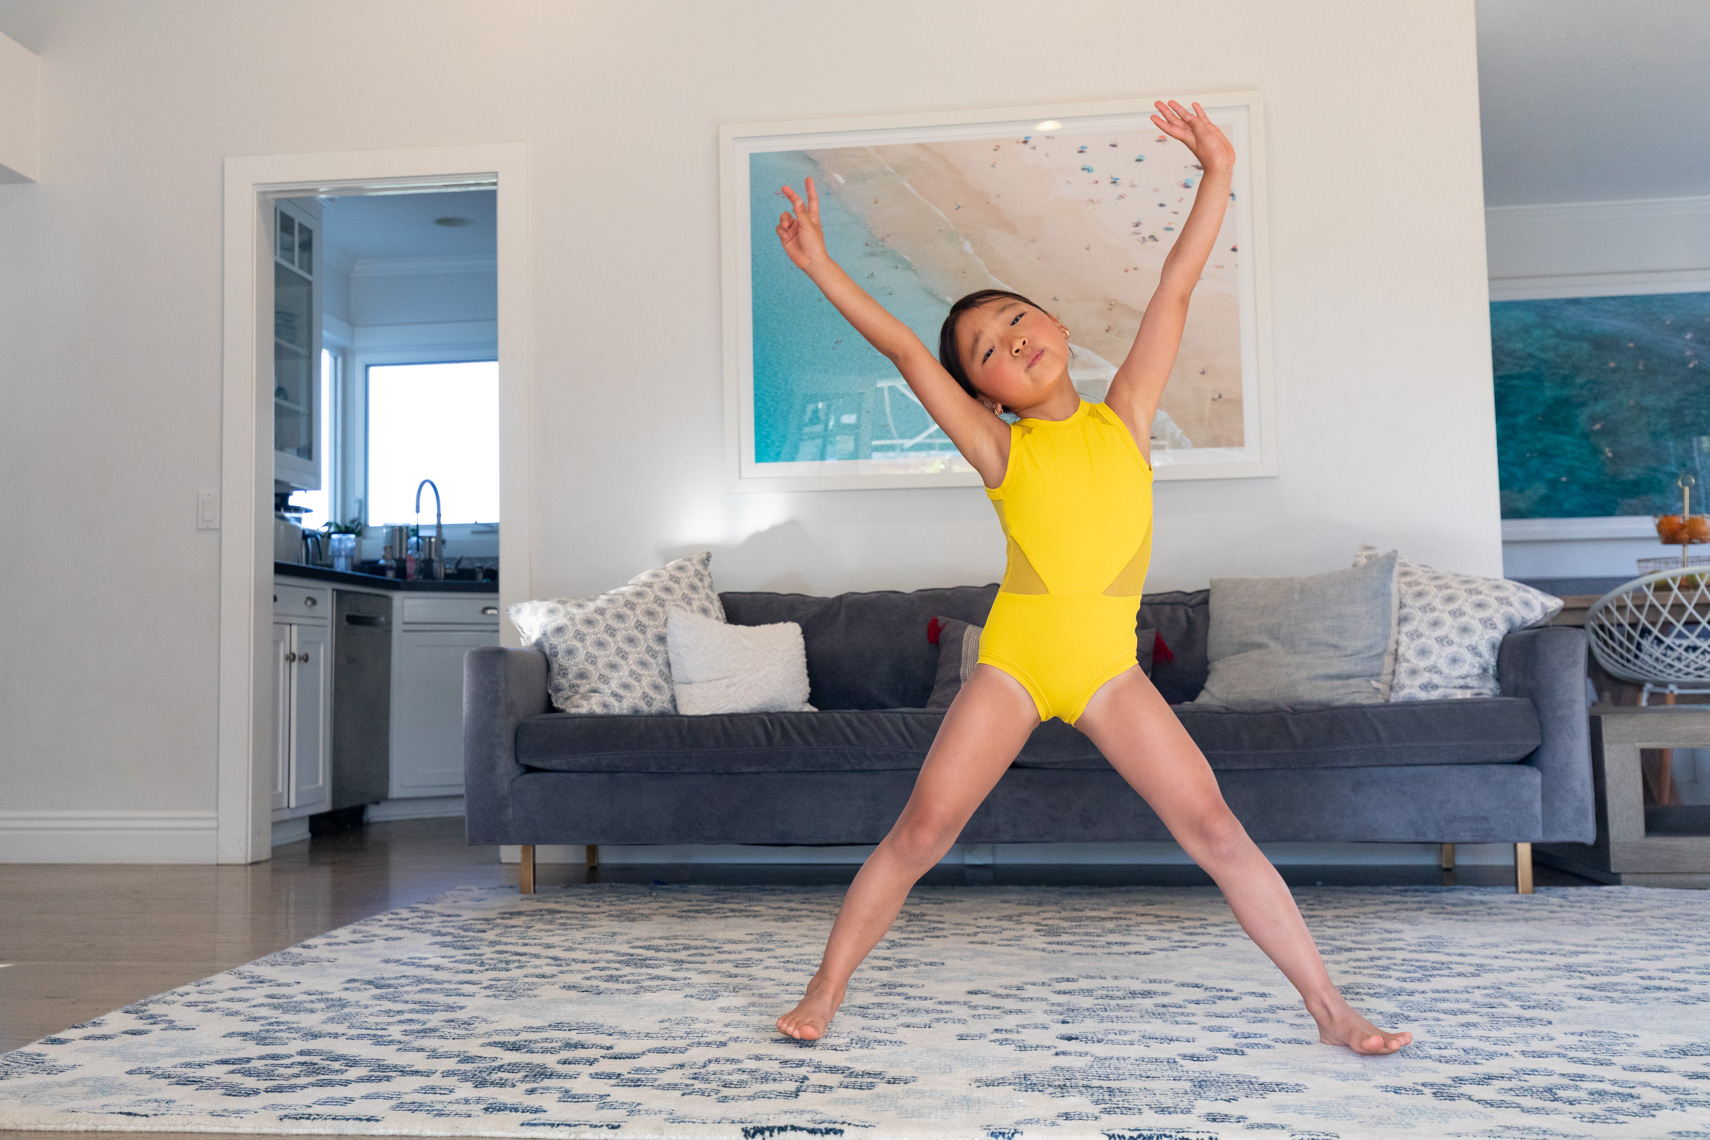 Young dancer at home